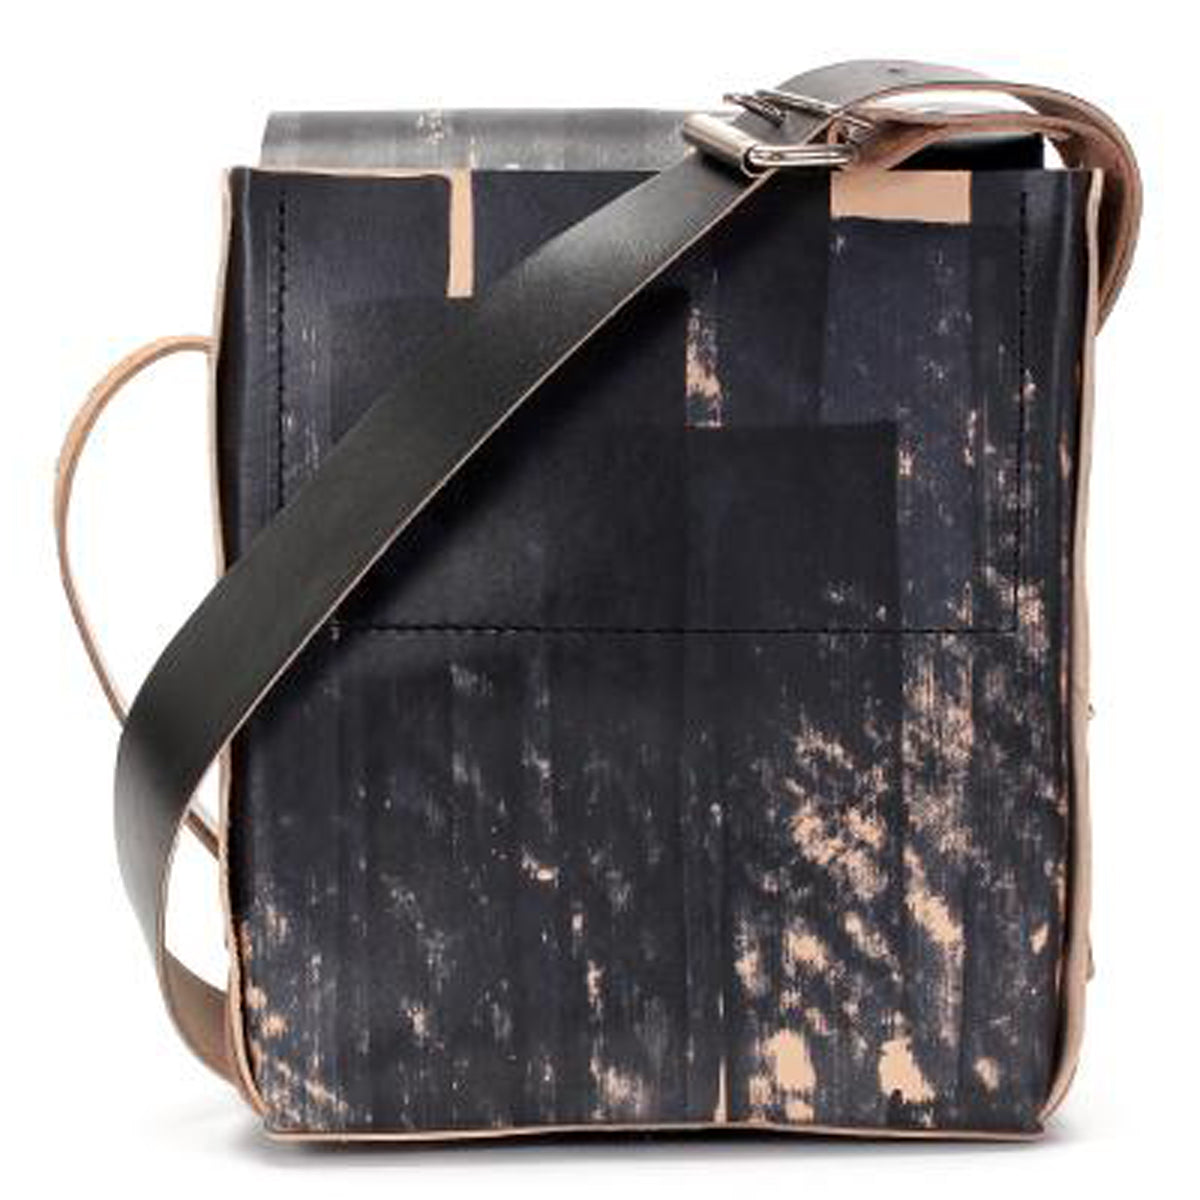 fiveleft leather DAYGOODS - Unisex Handmade Leather Crossbody Bag